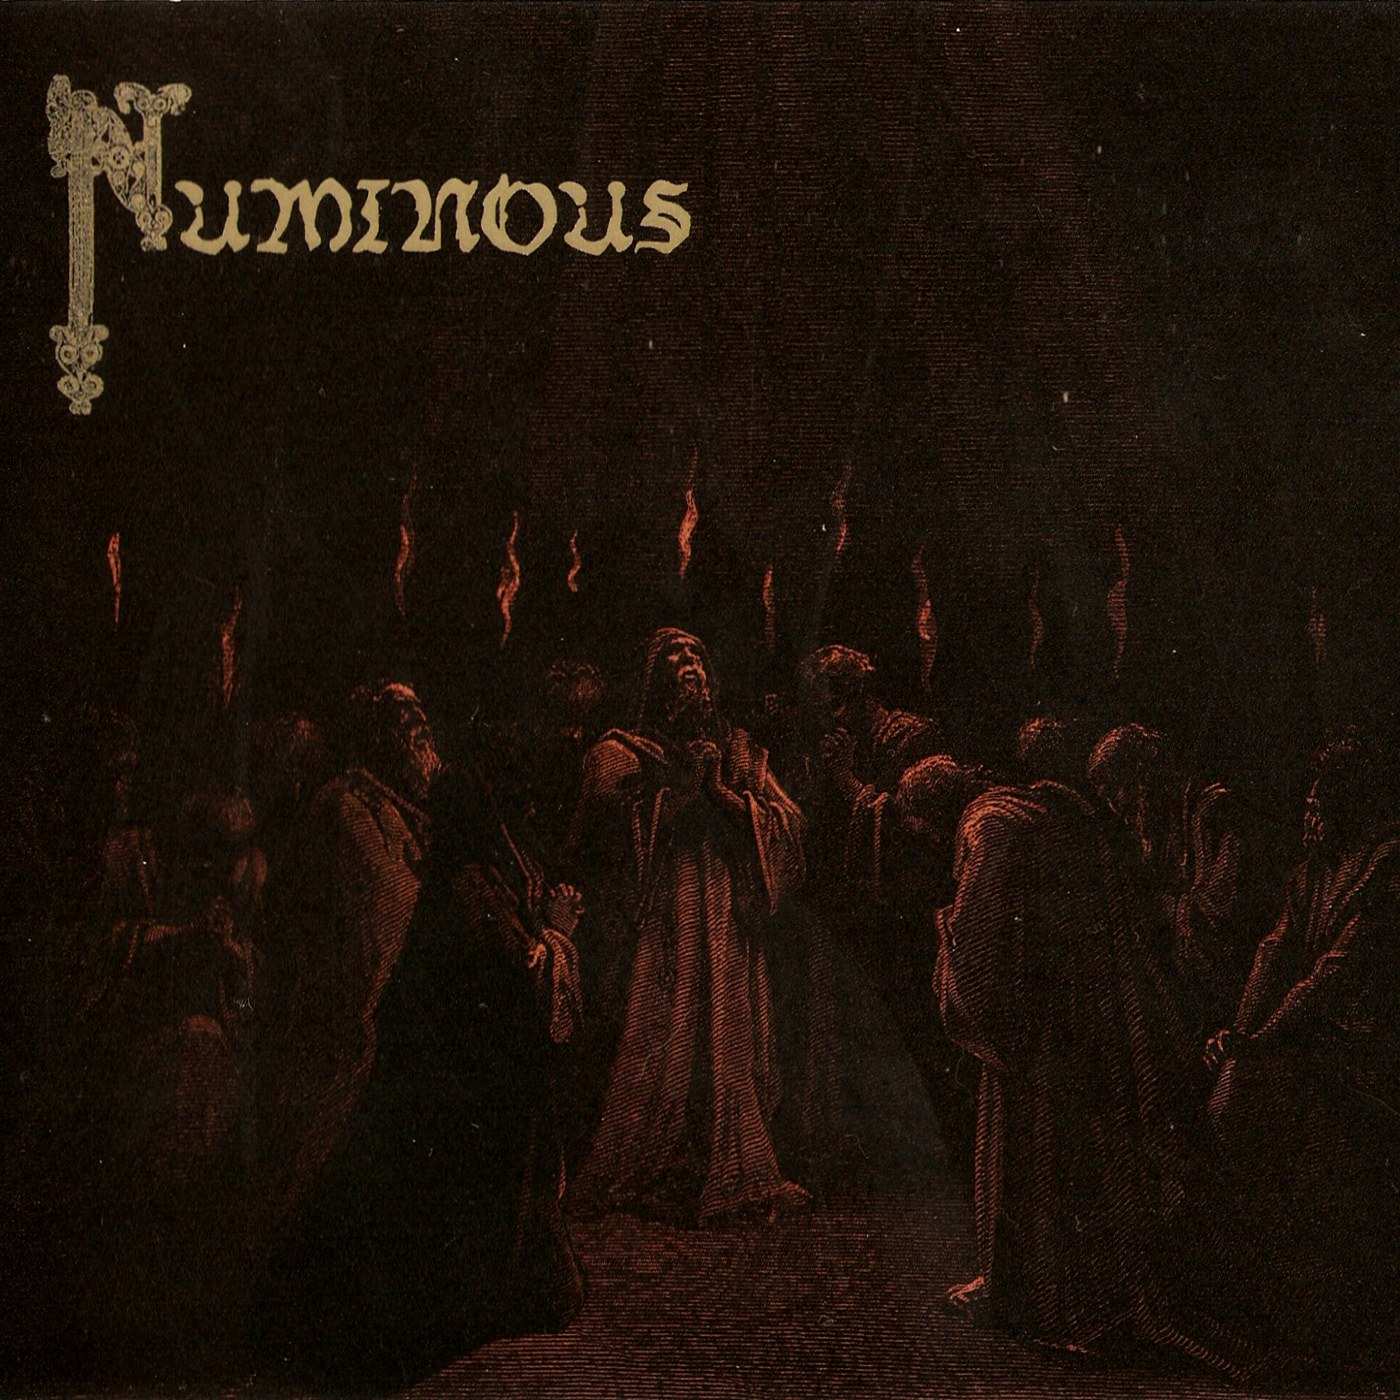 Review for Numinous - Numinous